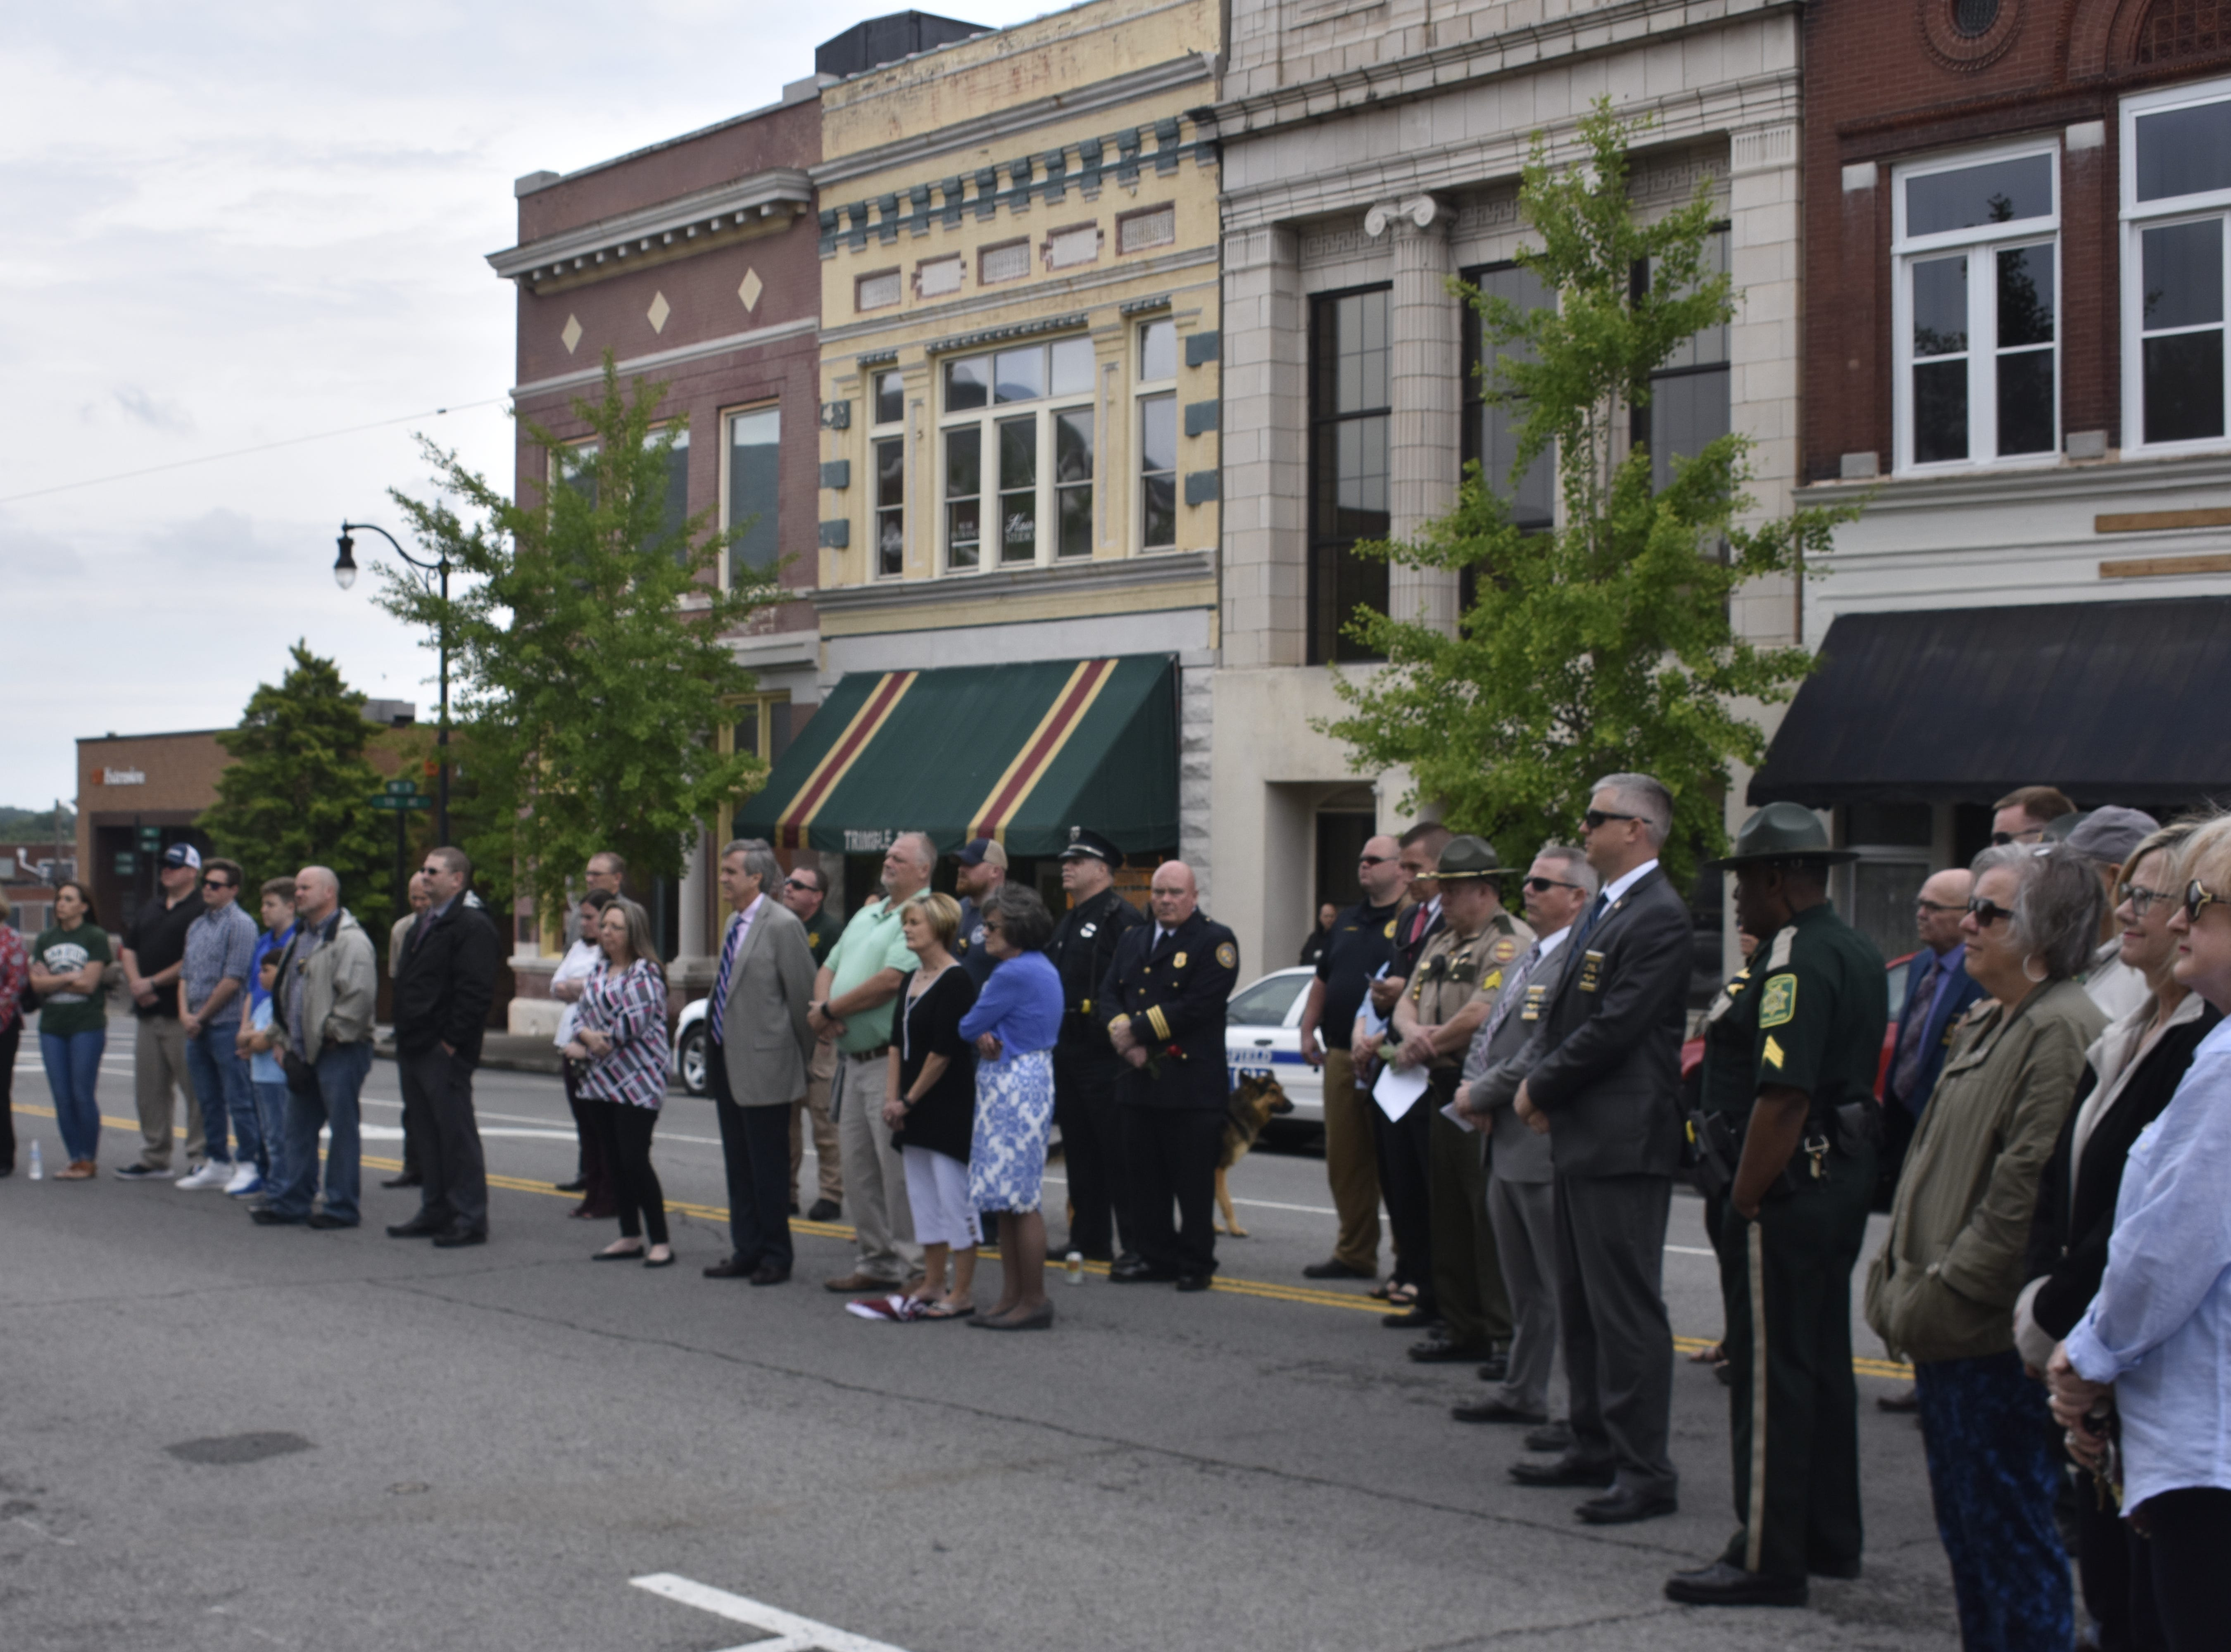 A crowd gathers at the county's annual law enforcement memorial ceremony, coinciding with National Police Week, on Wednesday, May 15.